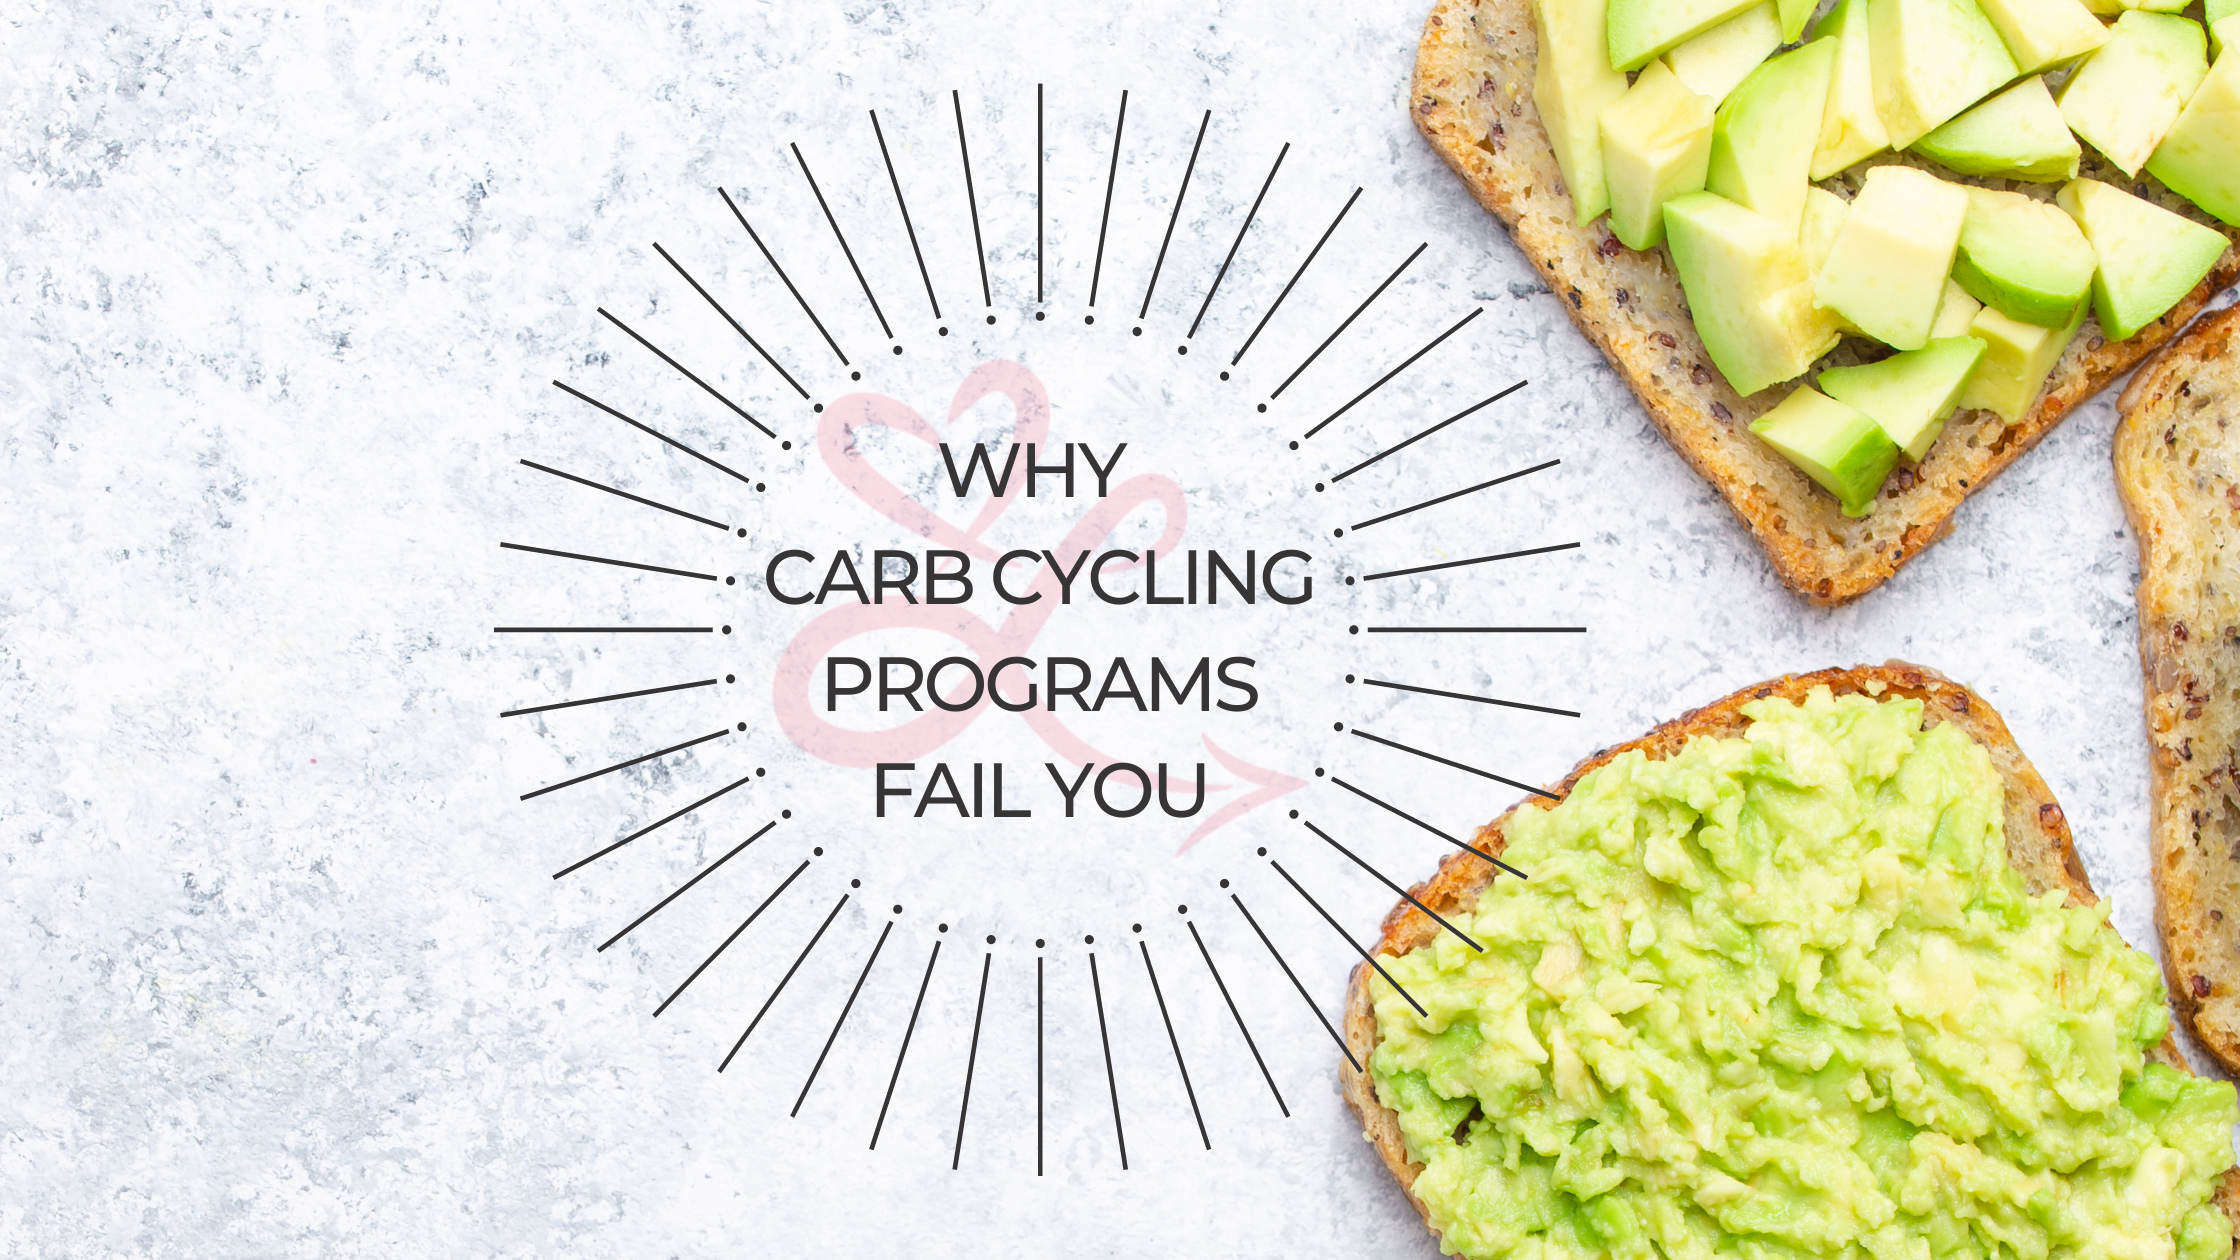 carb cycling hurts your overall wellness. Read why it fails you on loveyourselftowardshealthy.com